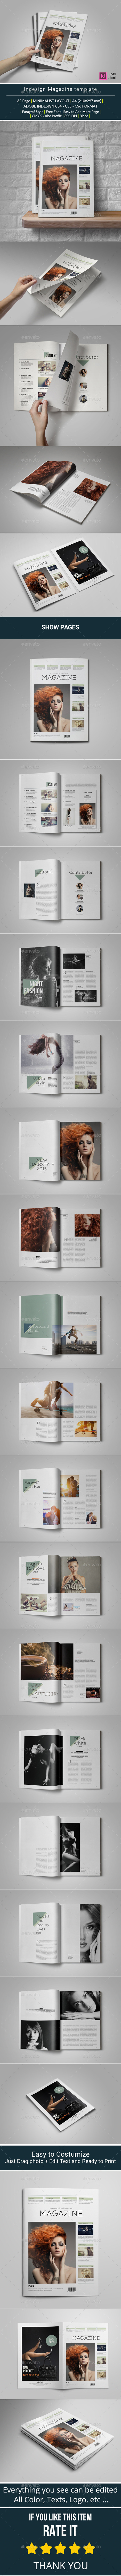 GraphicRiver Indesign Magazine Template 10299028